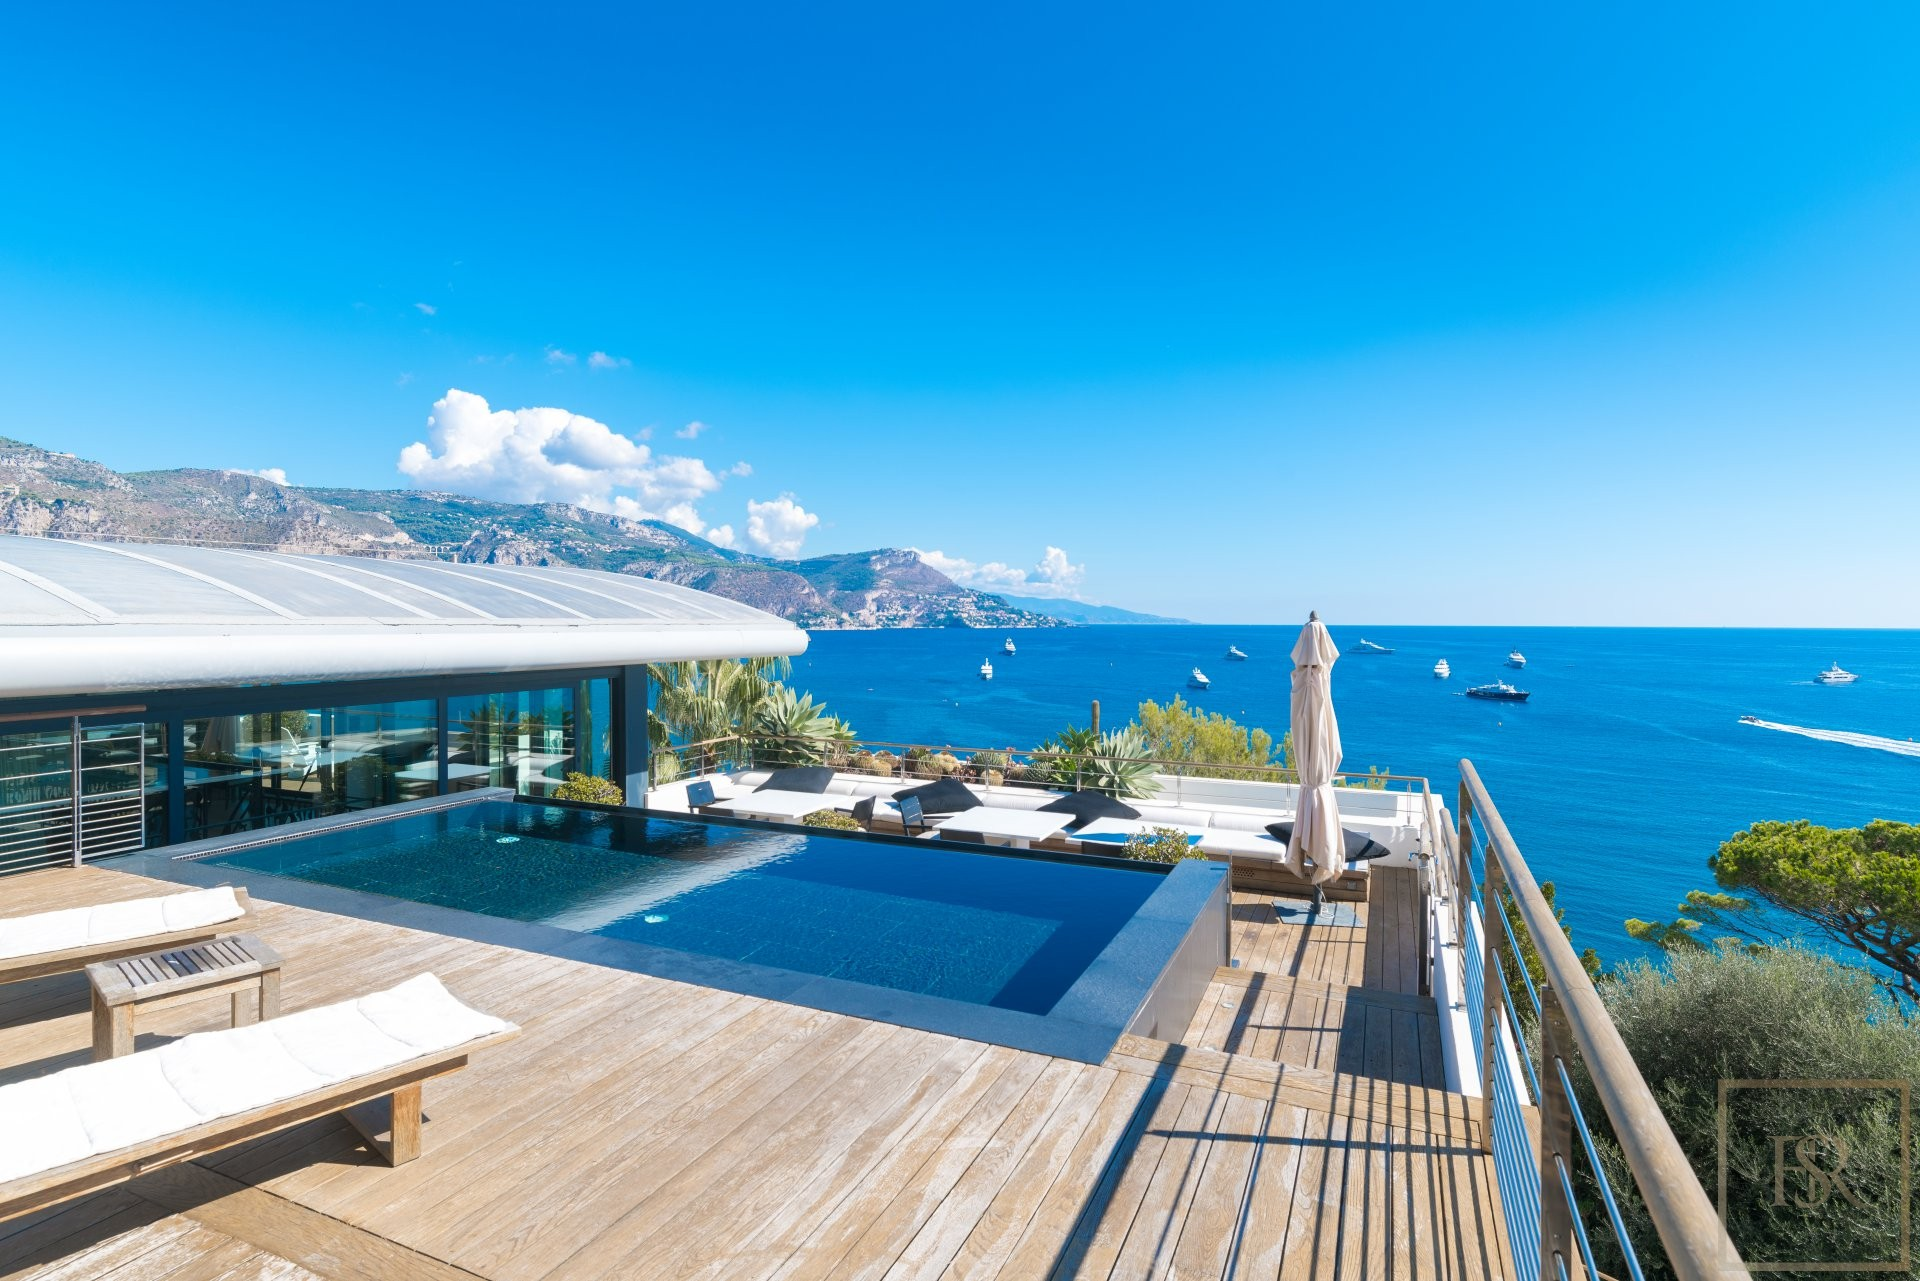 For super rich ultra luxury real estate properties homes, most expensive houses, rent unique penthouse apartment and ultimate villa in Saint-Jean-Cap-Ferrat France for rent holiday French riviera